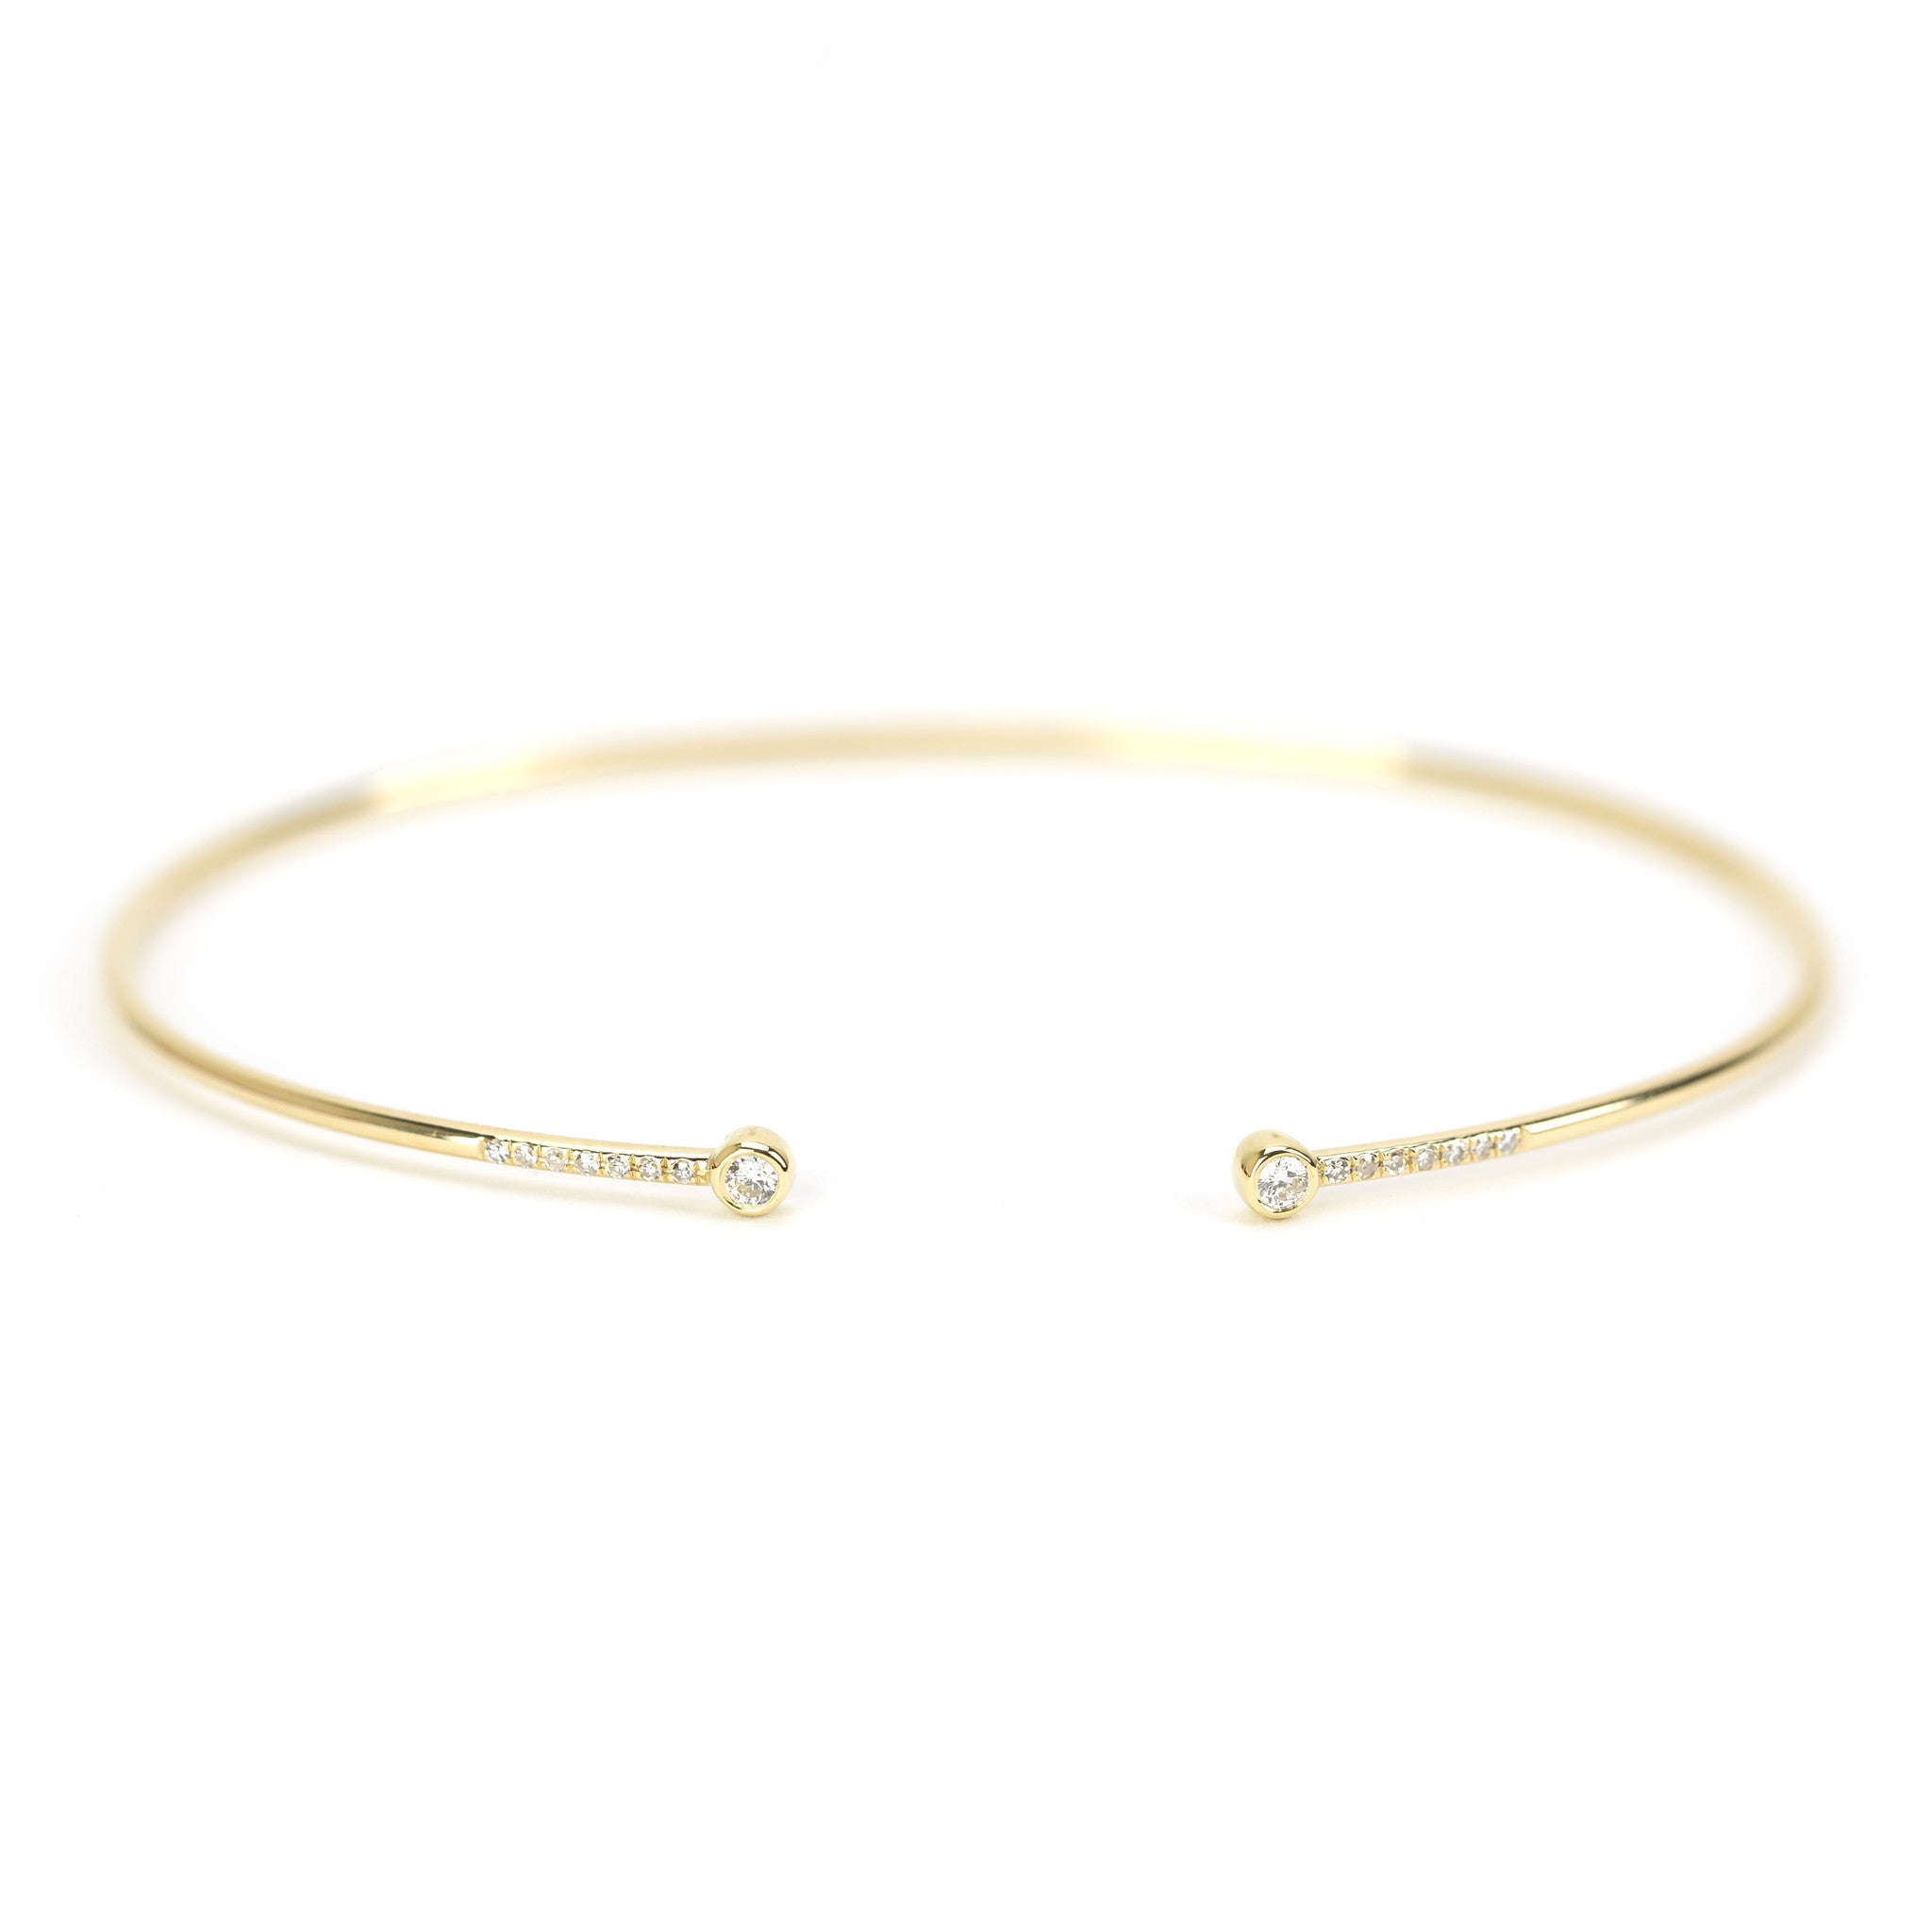 bangles truth bracelet jewelry gold simple plated product manola handcrafted